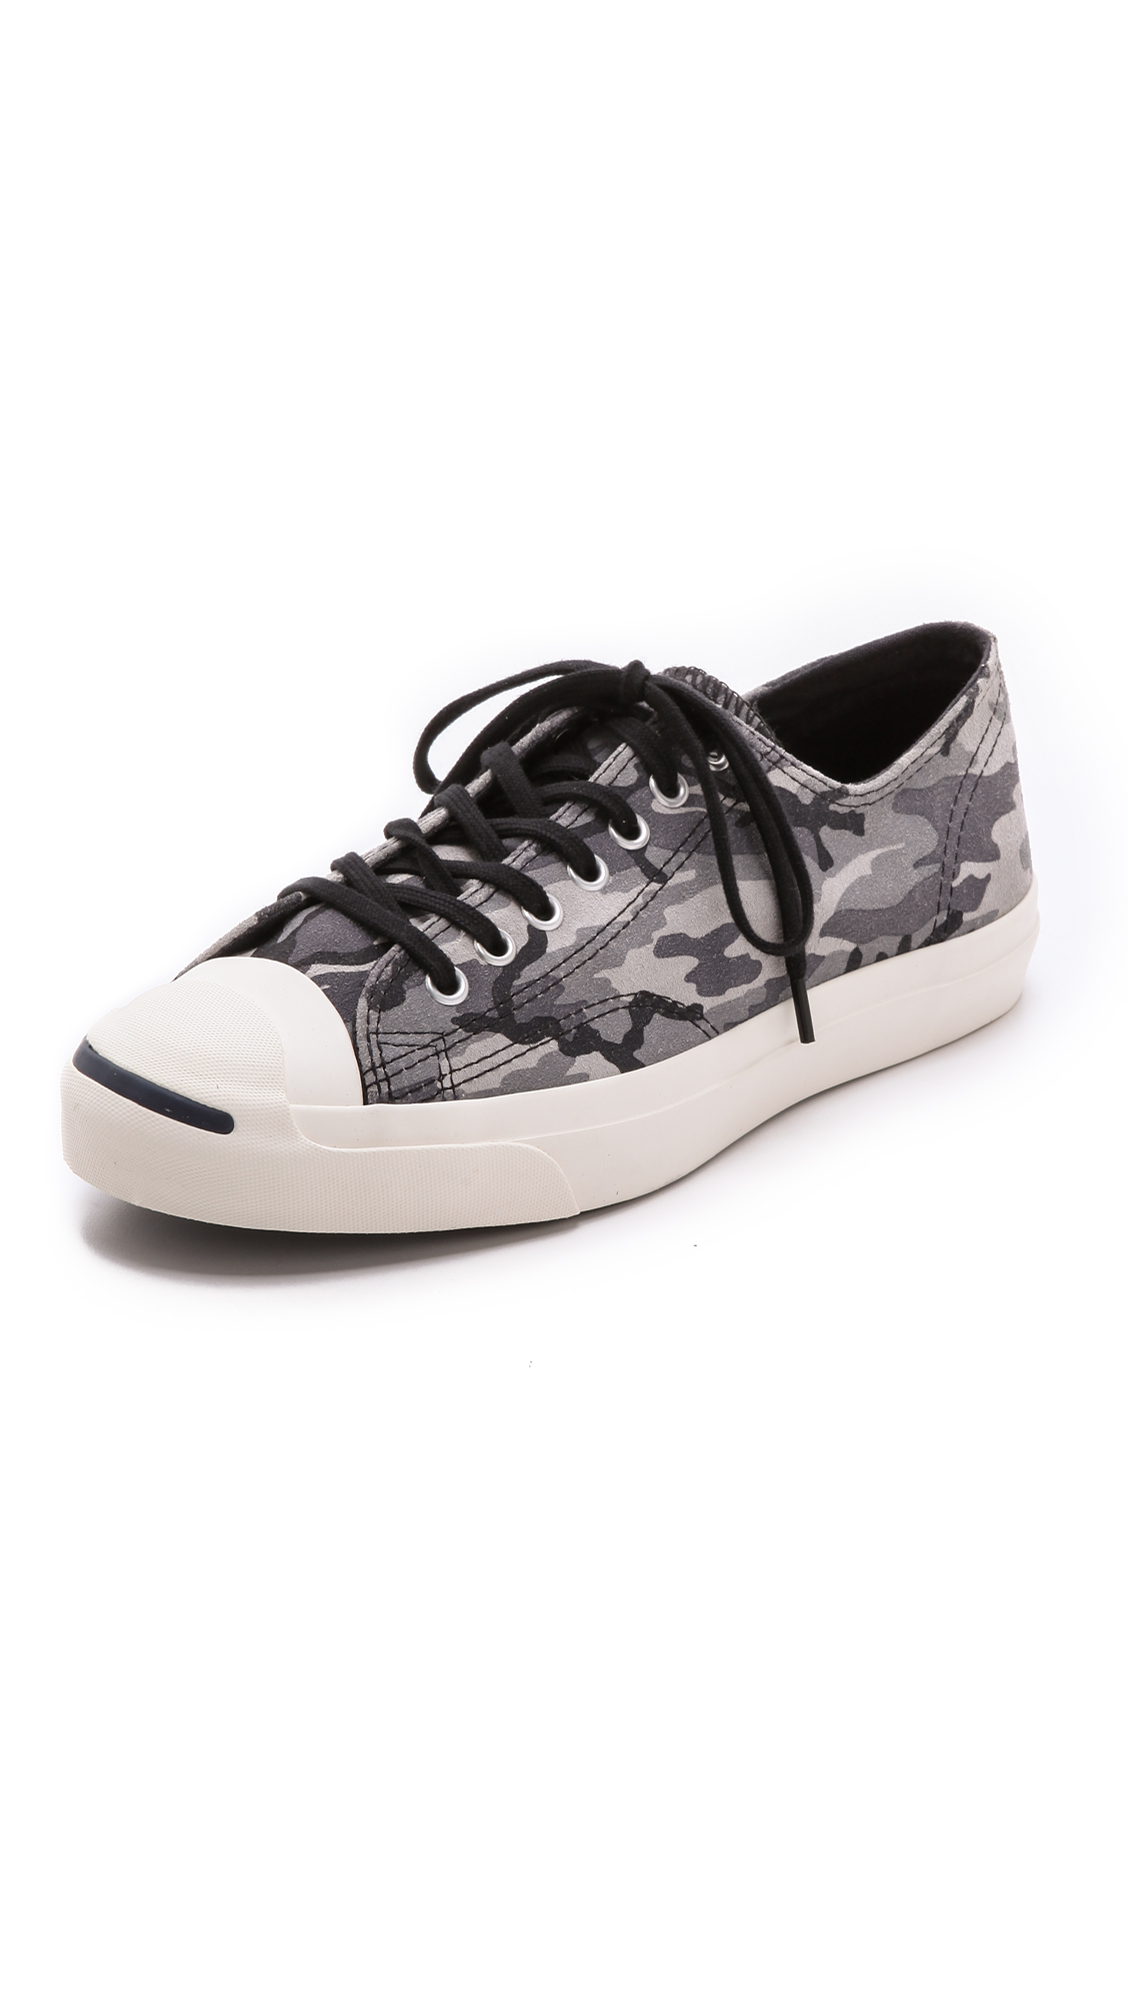 317b5c22b42c Lyst - Converse Jack Purcell Camo Sneakers in Gray for Men